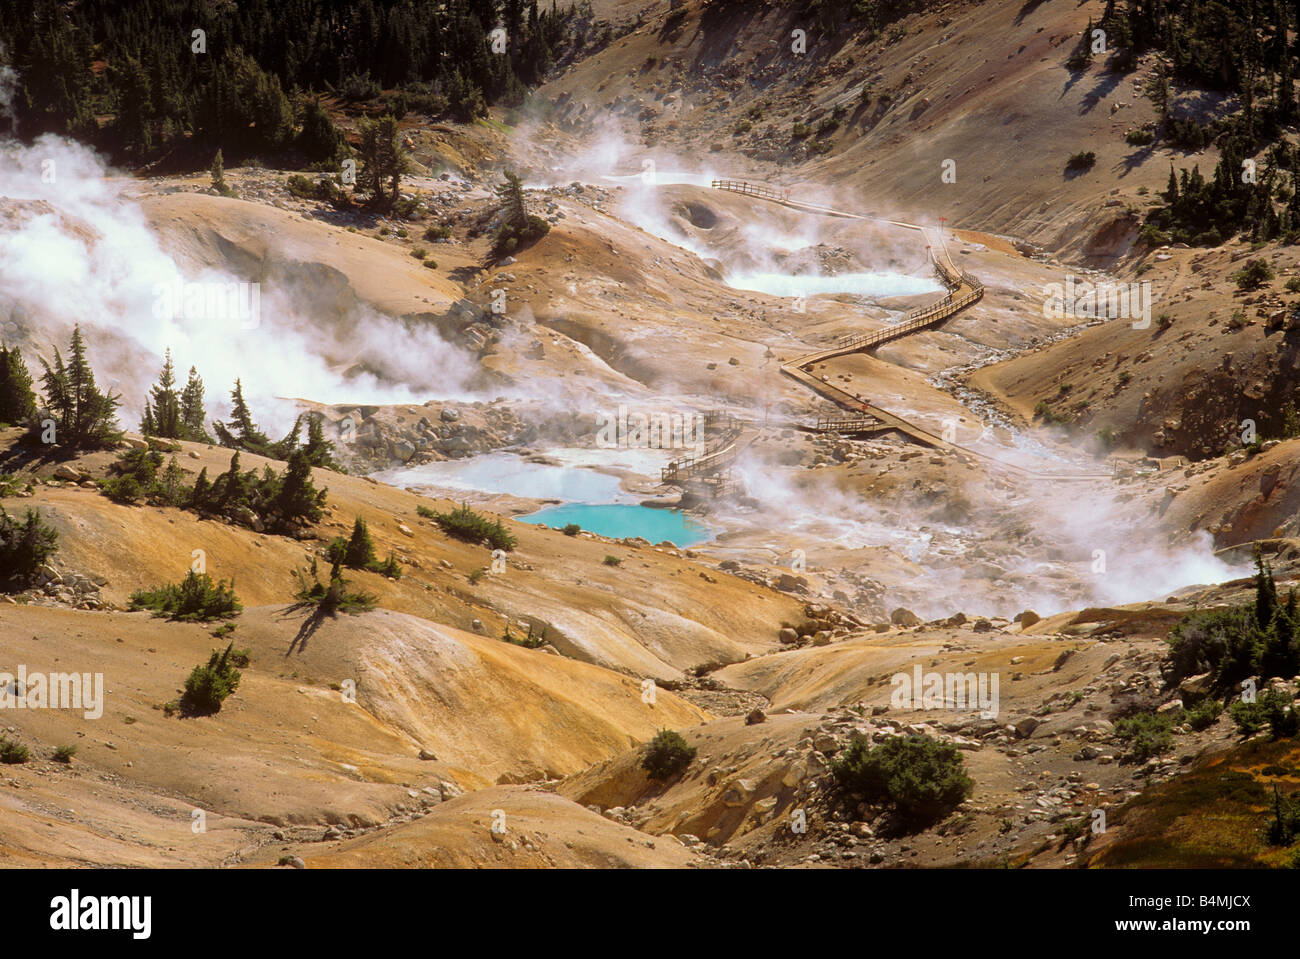 Steam rising from the Bumpass Hell geothermal area Cascade Mountains Pacific Lassen Volcanic National Park California - Stock Image